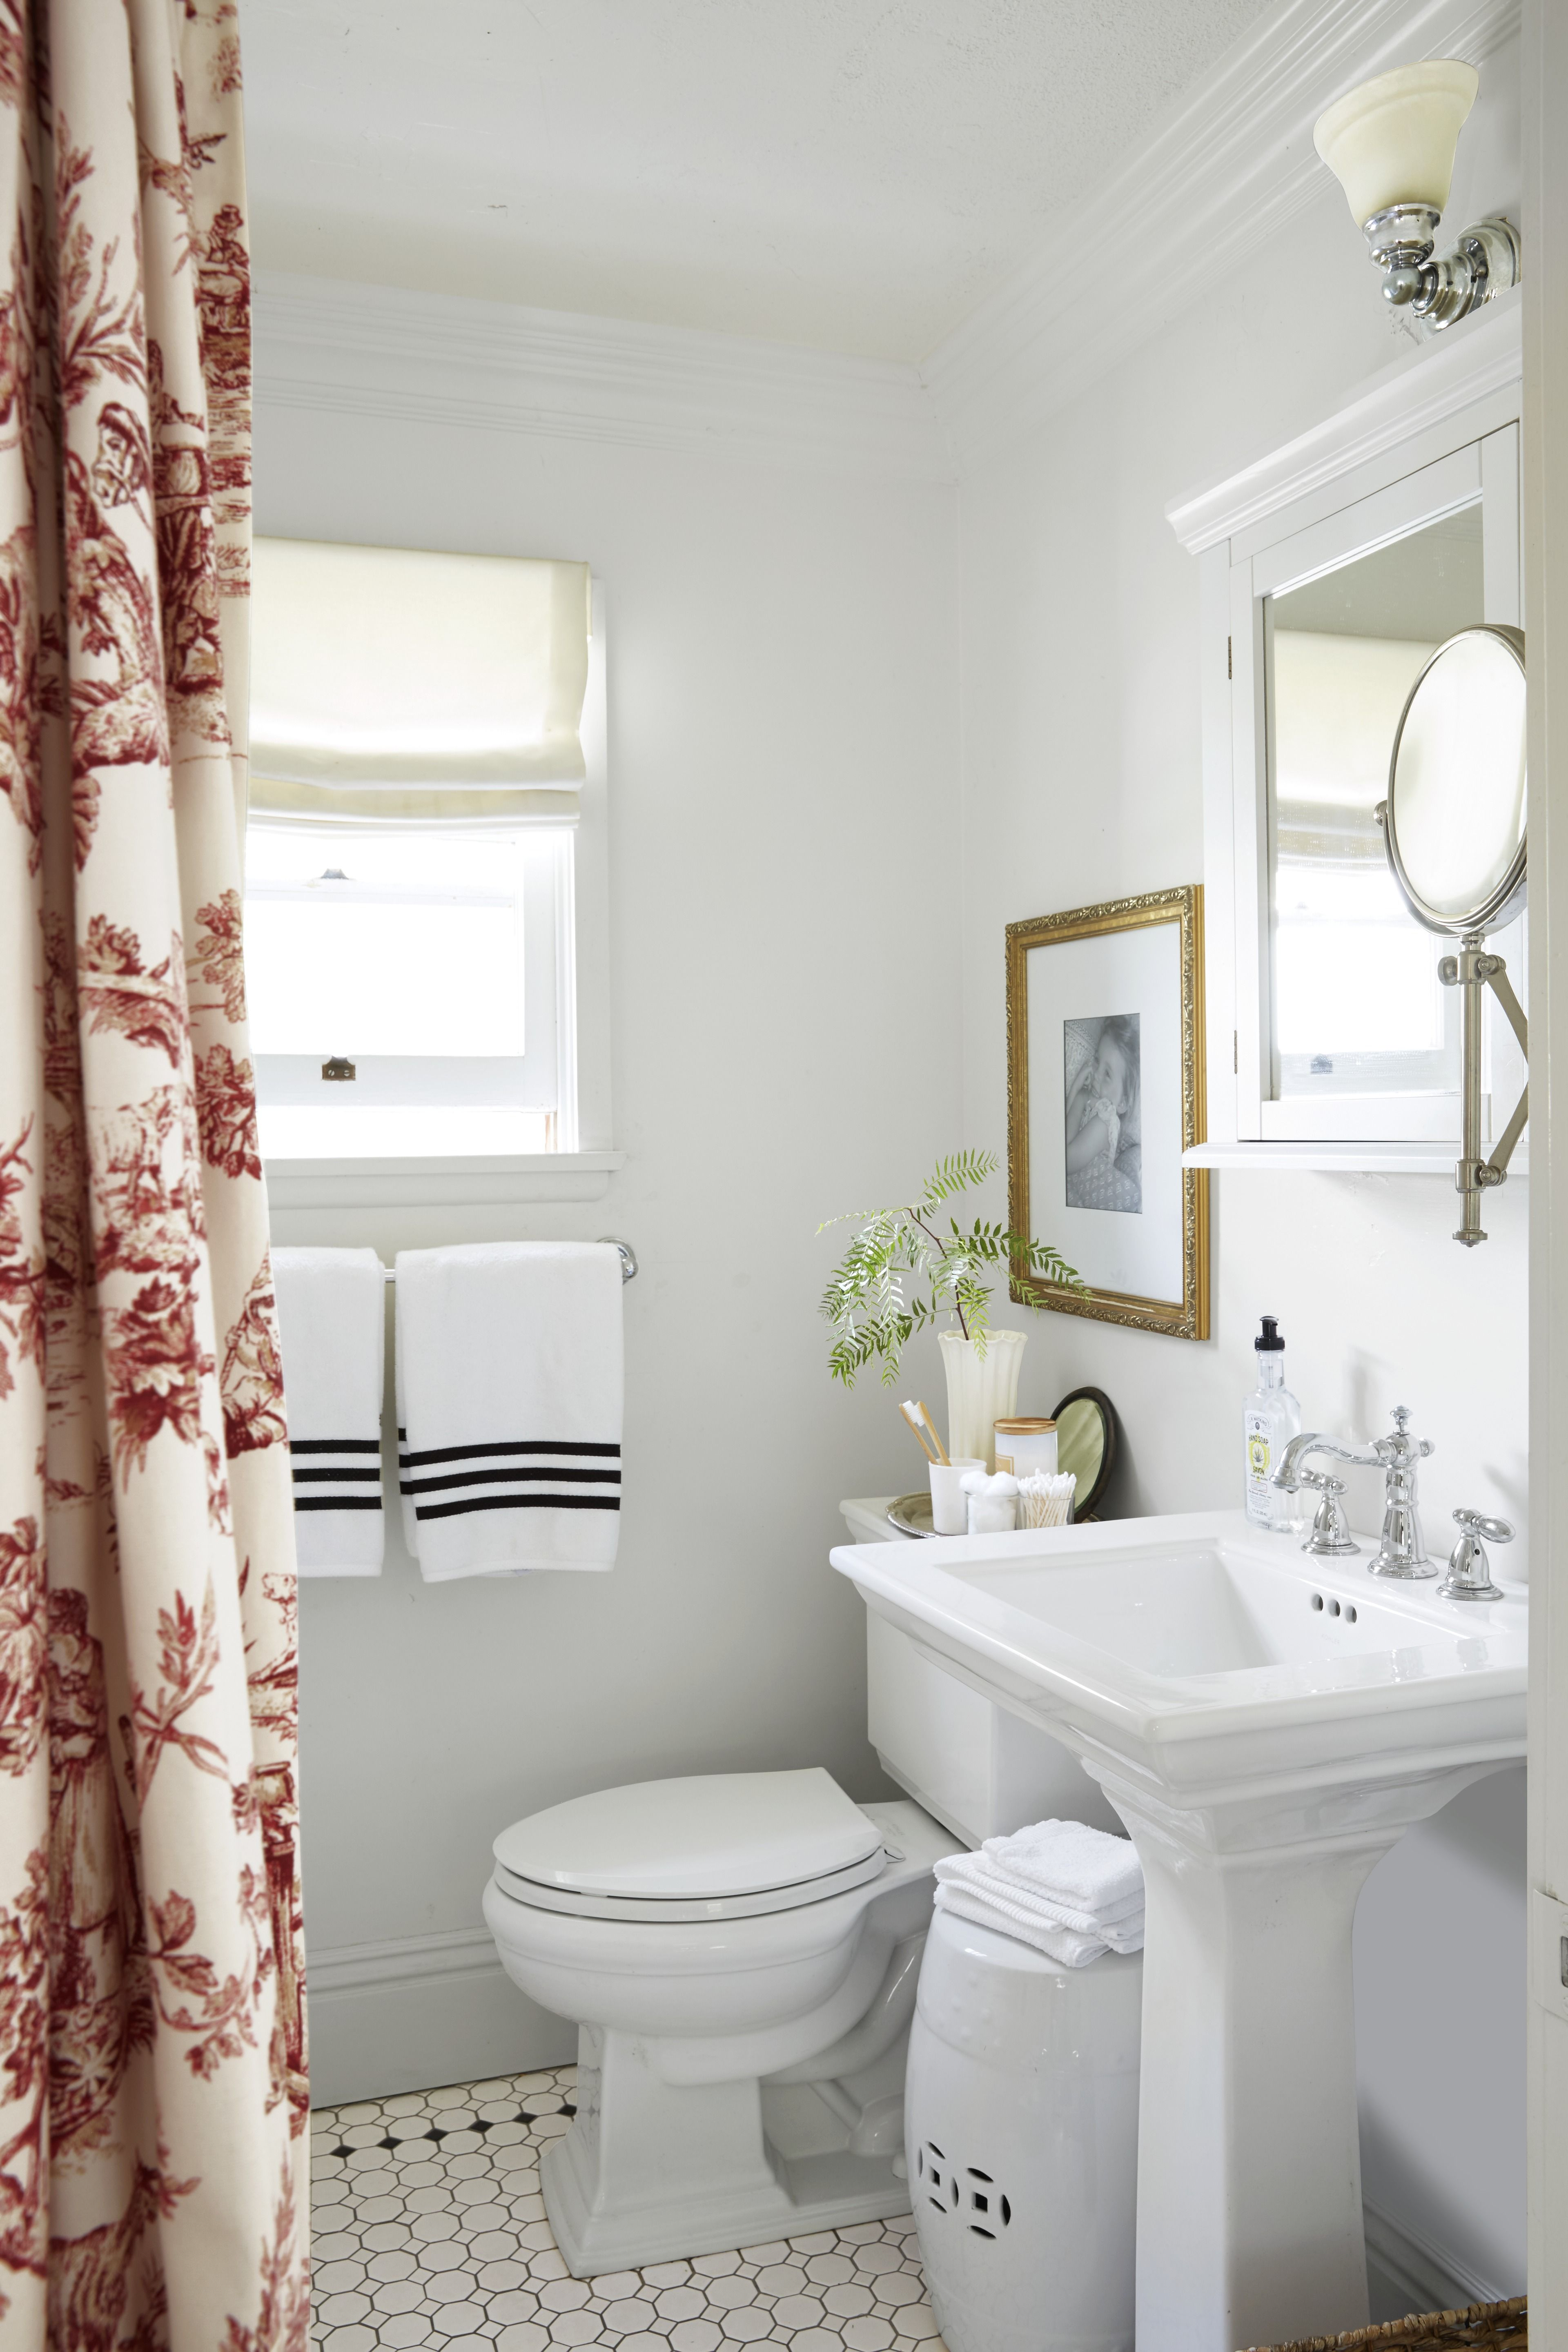 50 Bathroom Decorating Ideas Pictures Of Bathroom Decor